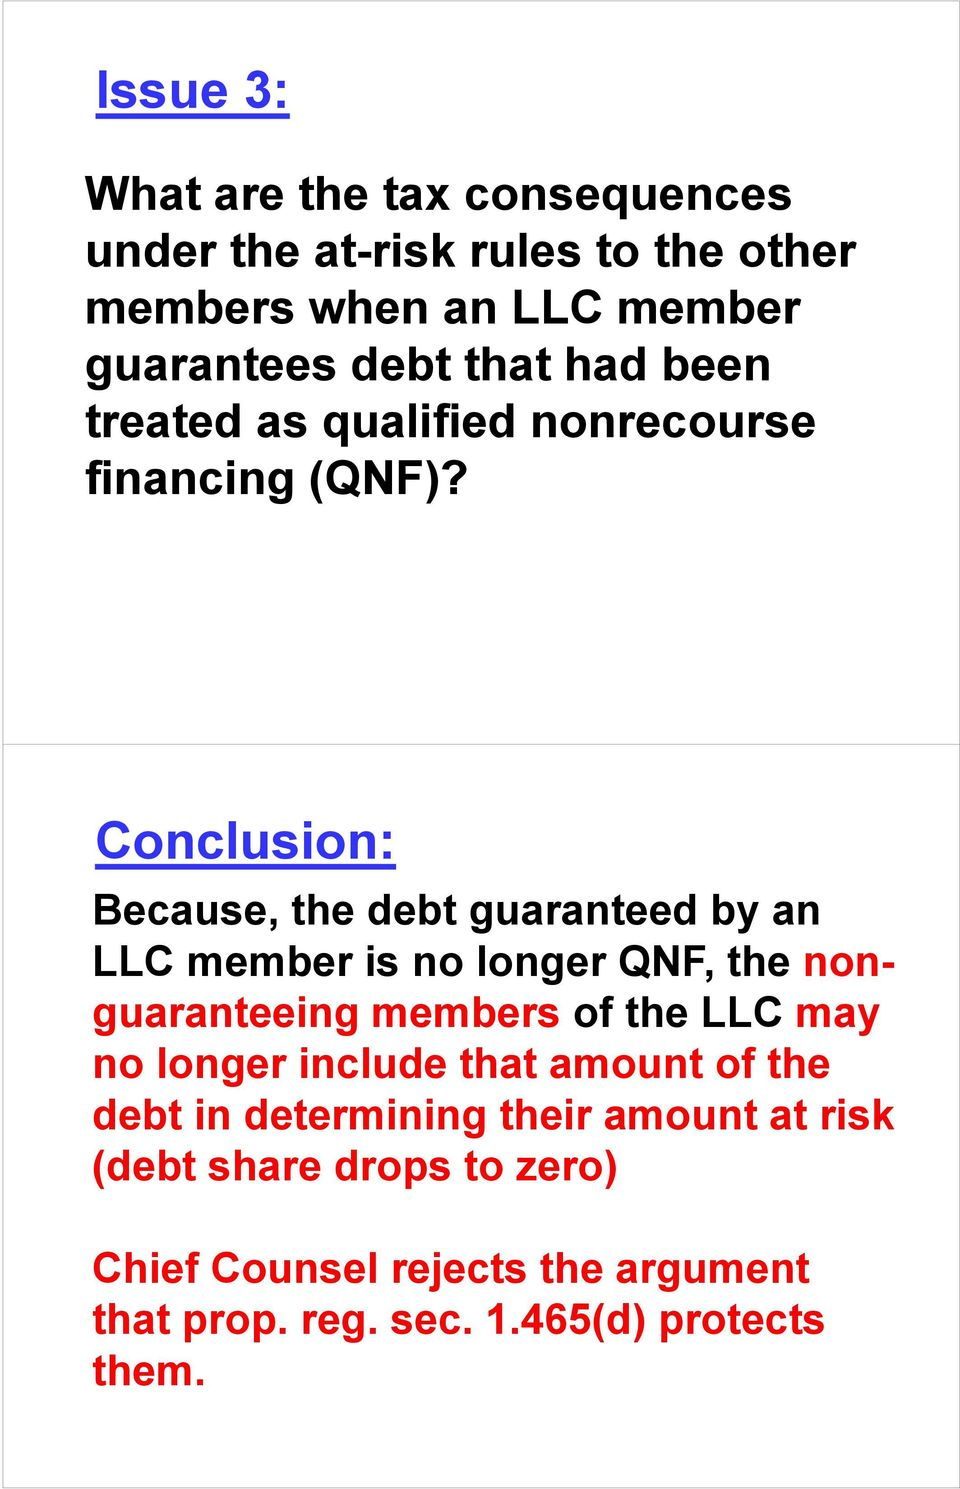 Conclusion: Because, the debt guaranteed by an LLC member is no longer QNF, the nonguaranteeing members of the LLC may no